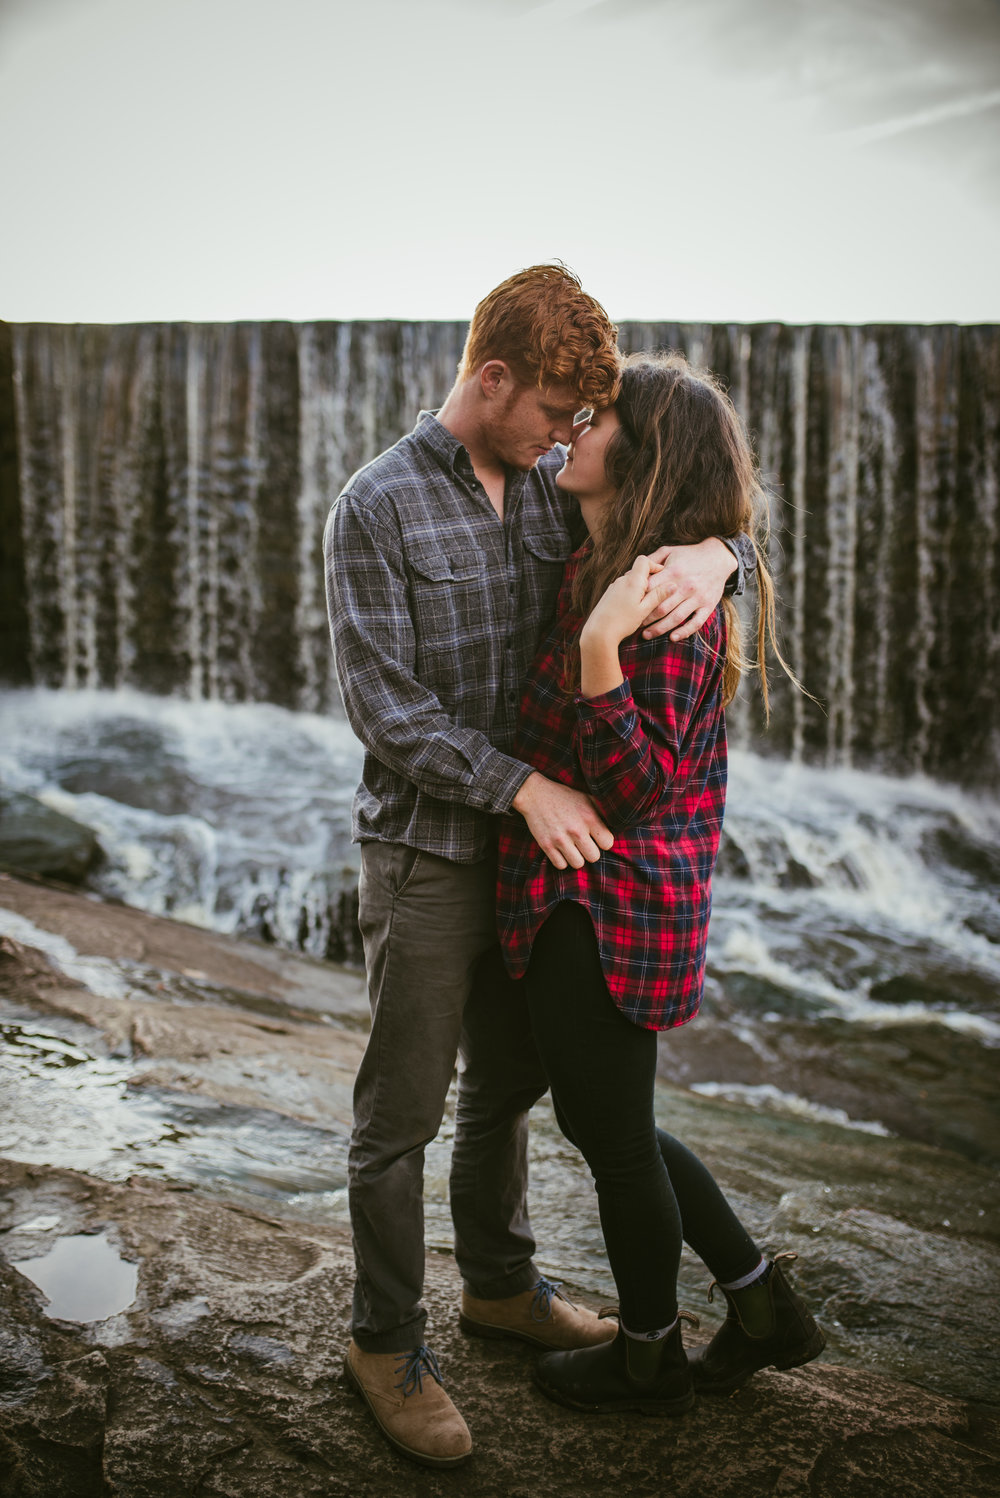 raleigh photographer - raleigh engagement - waterfall engagement - outdoors engagement